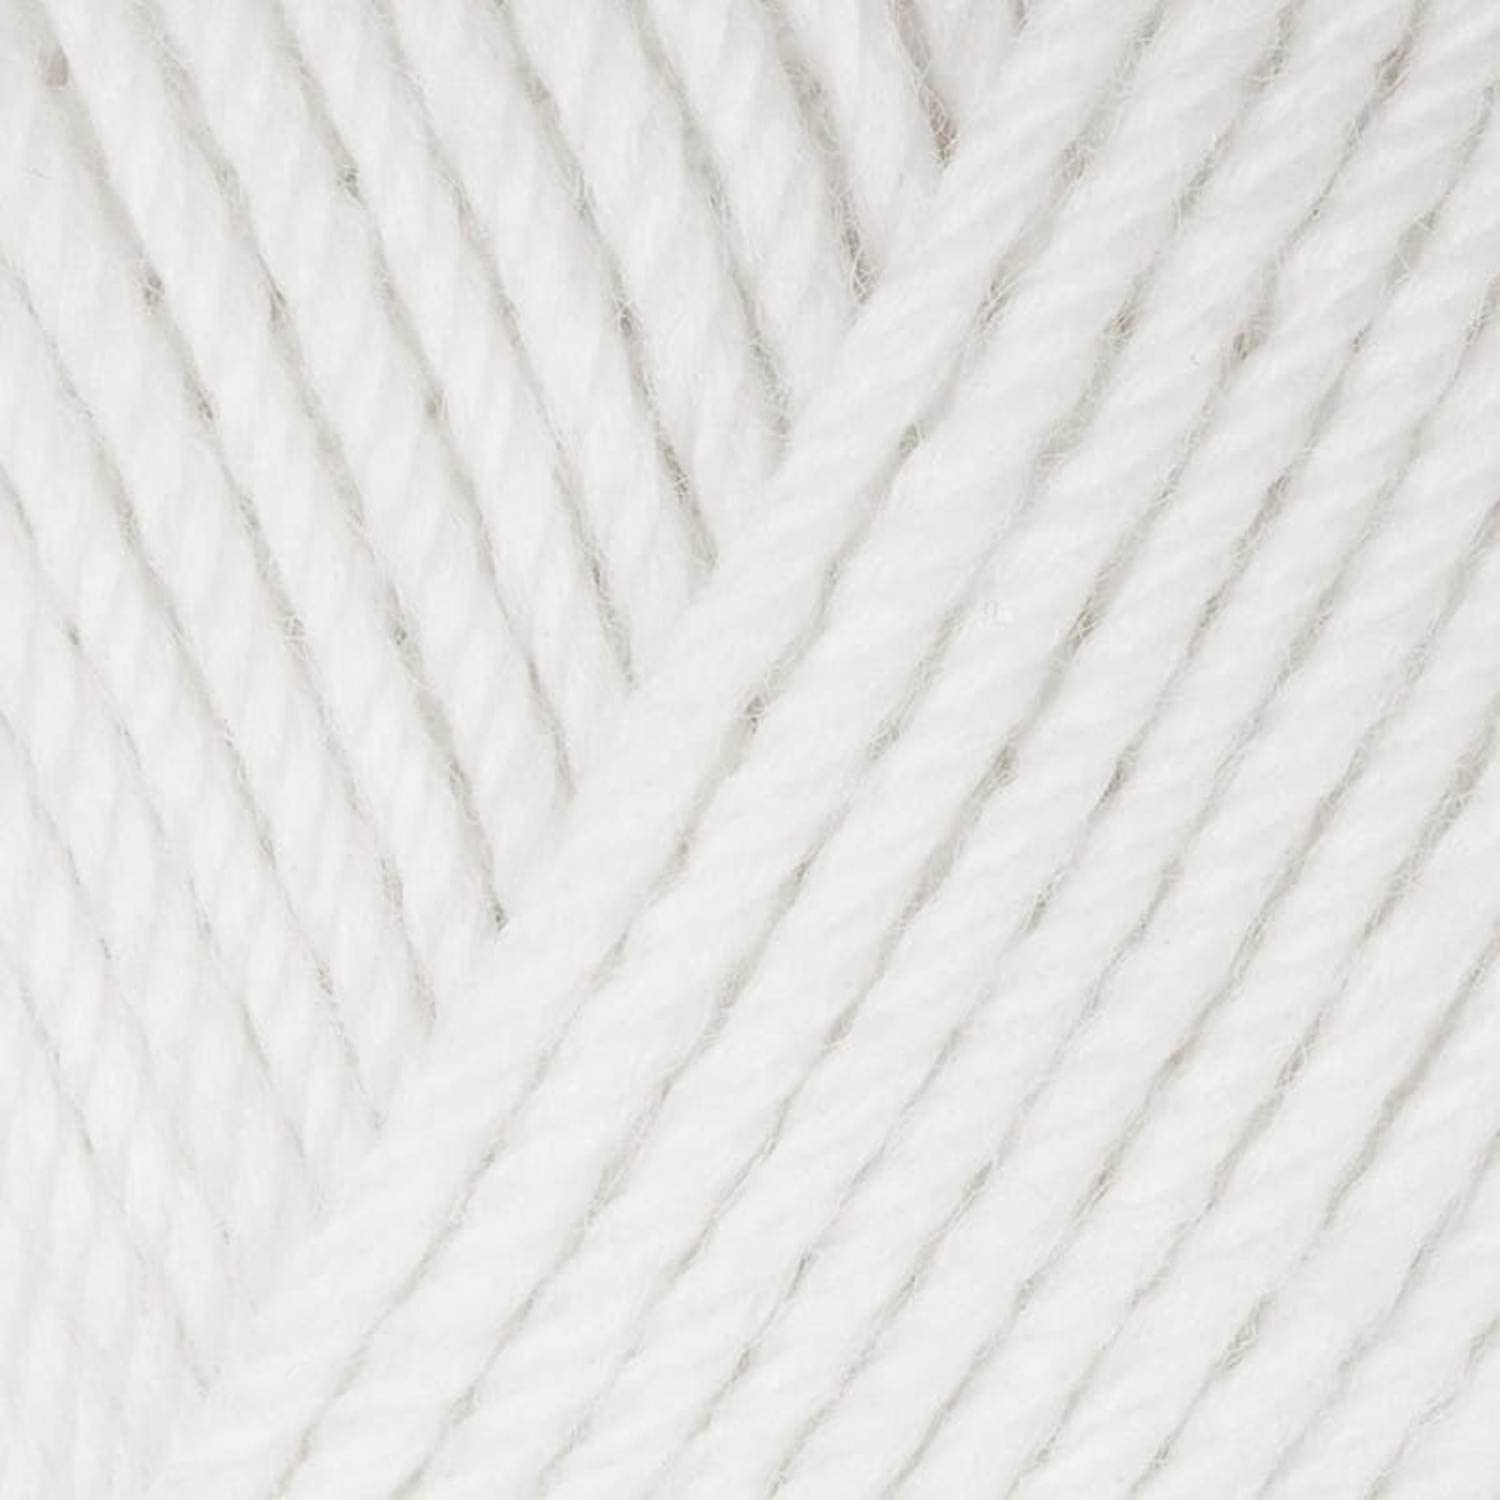 Cascade Yarns - 220 3-DK store White New products world's highest quality popular Superwash 871